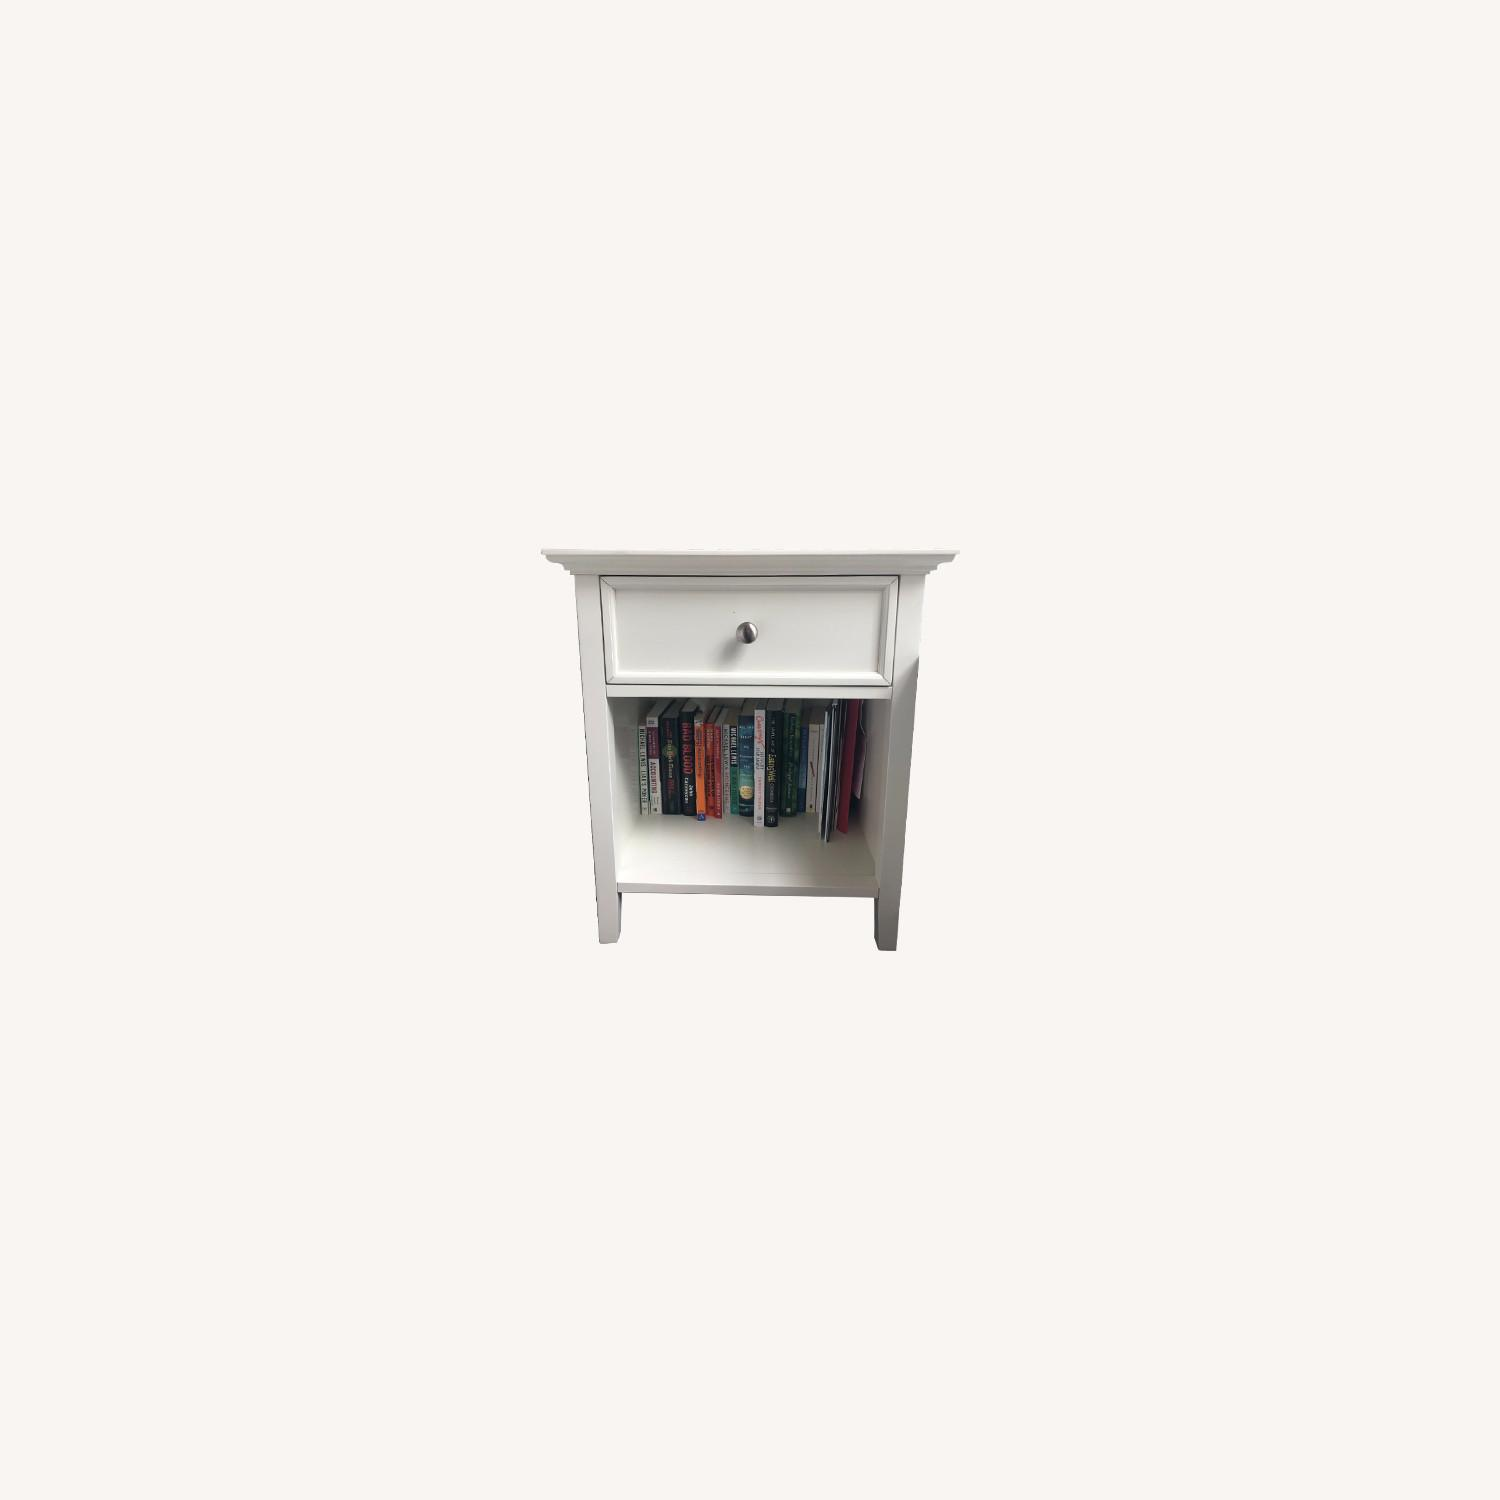 Mealey's Furniture White Wood End Table set (2) - image-0